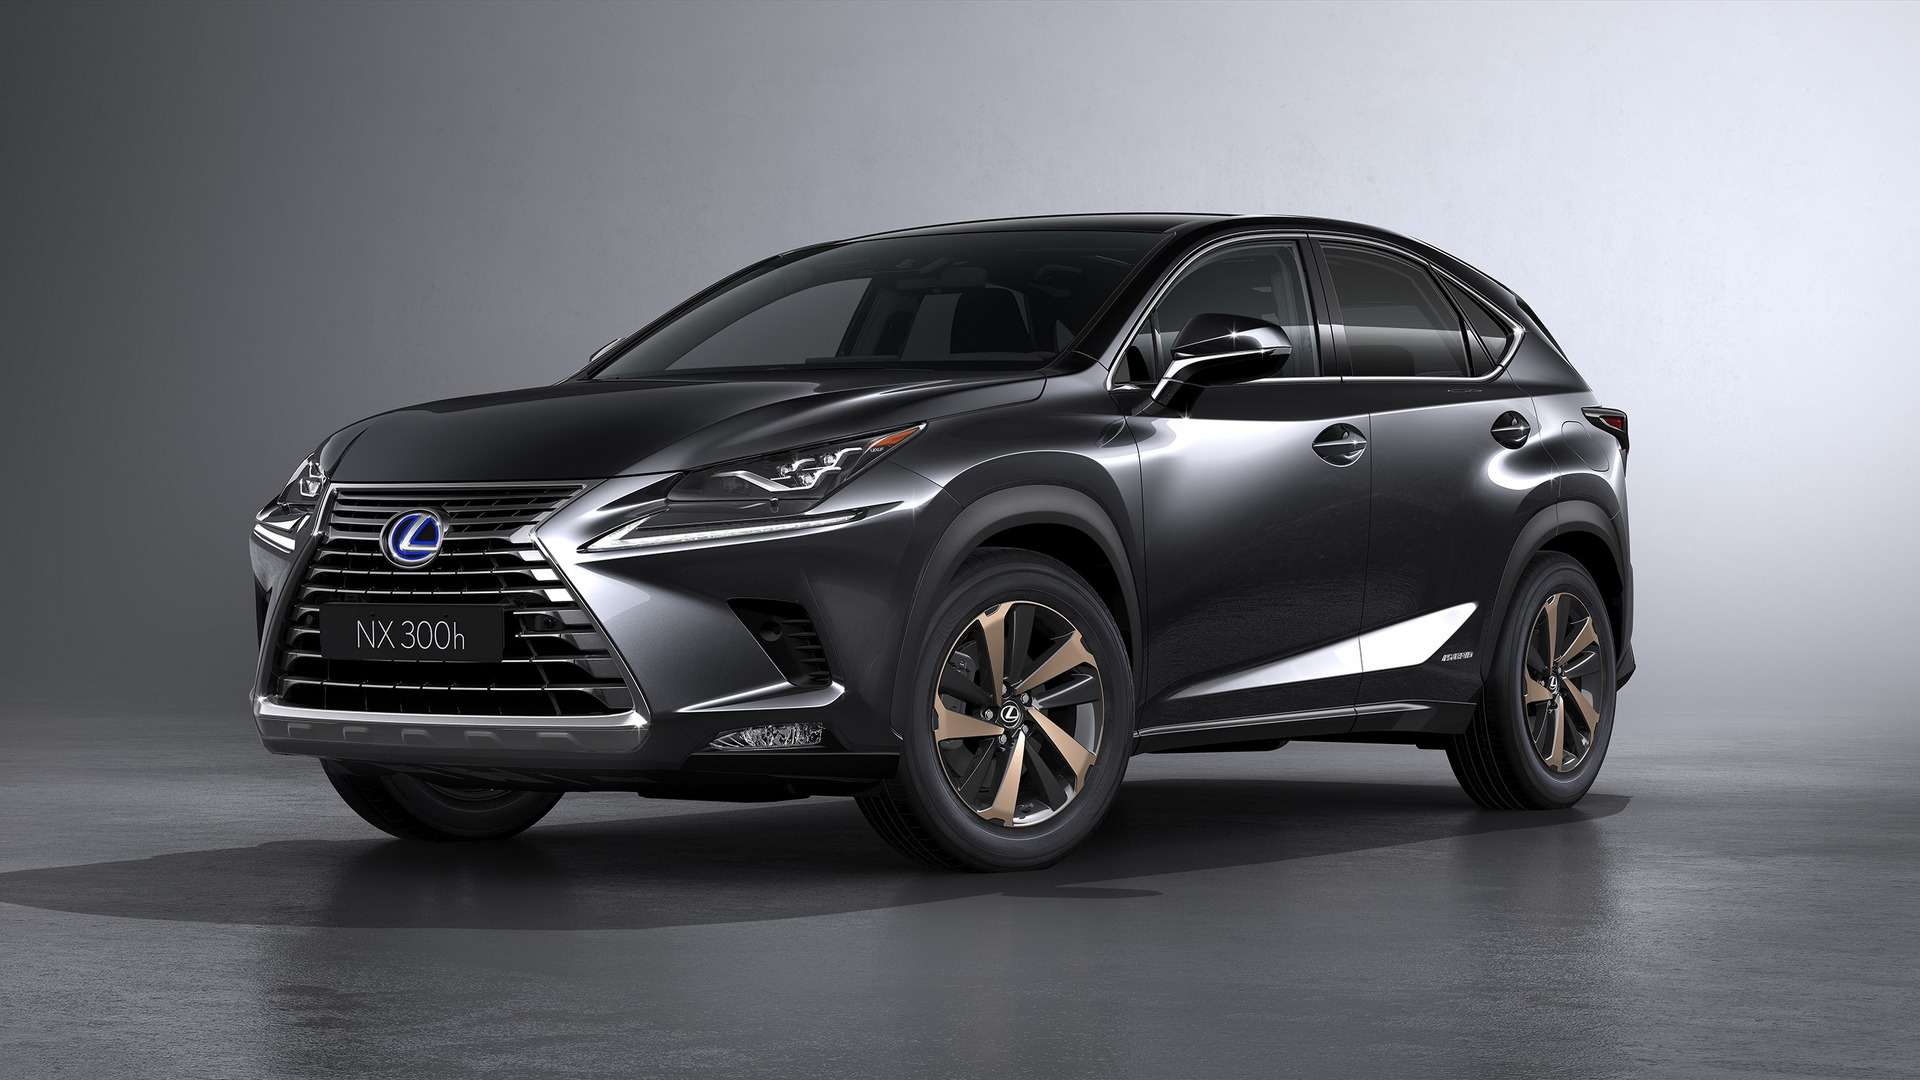 2018 Lexus NX: Refreshed, Standard Safety System, Better Handling >> 2018 Lexus Nx Debuts New Look And Enhanced Handling